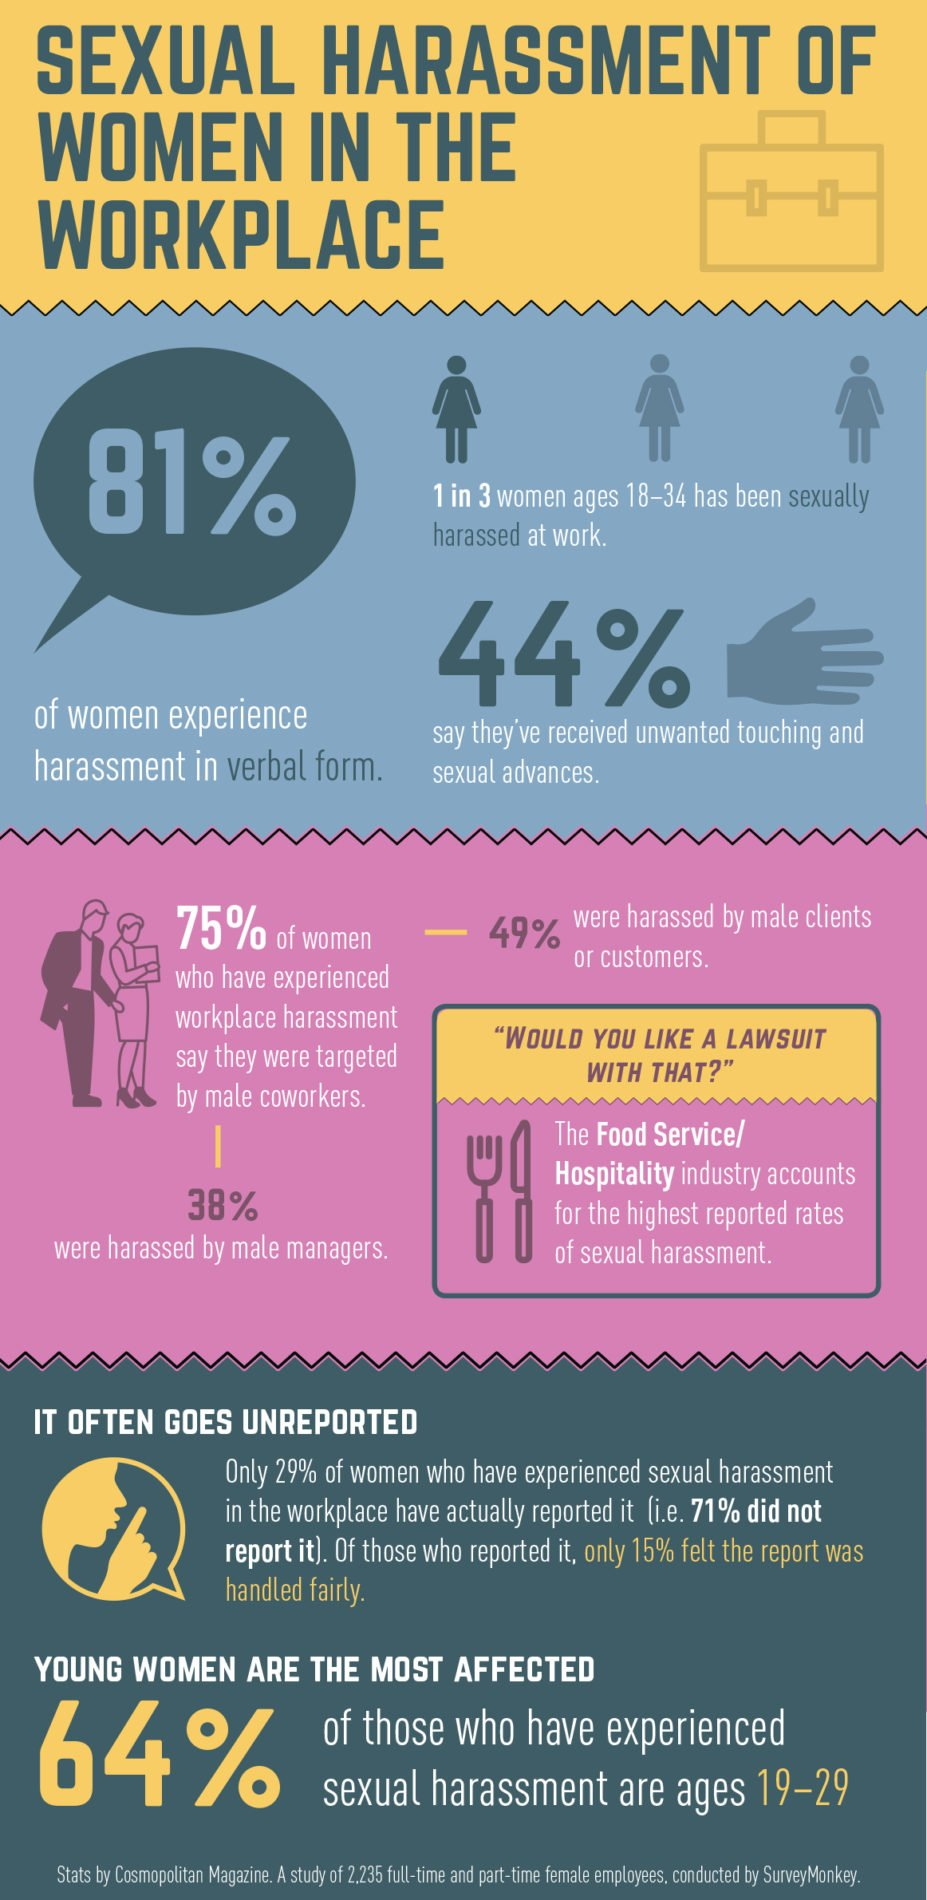 infographic-sexual-harassment-of-women-in-the-workplace